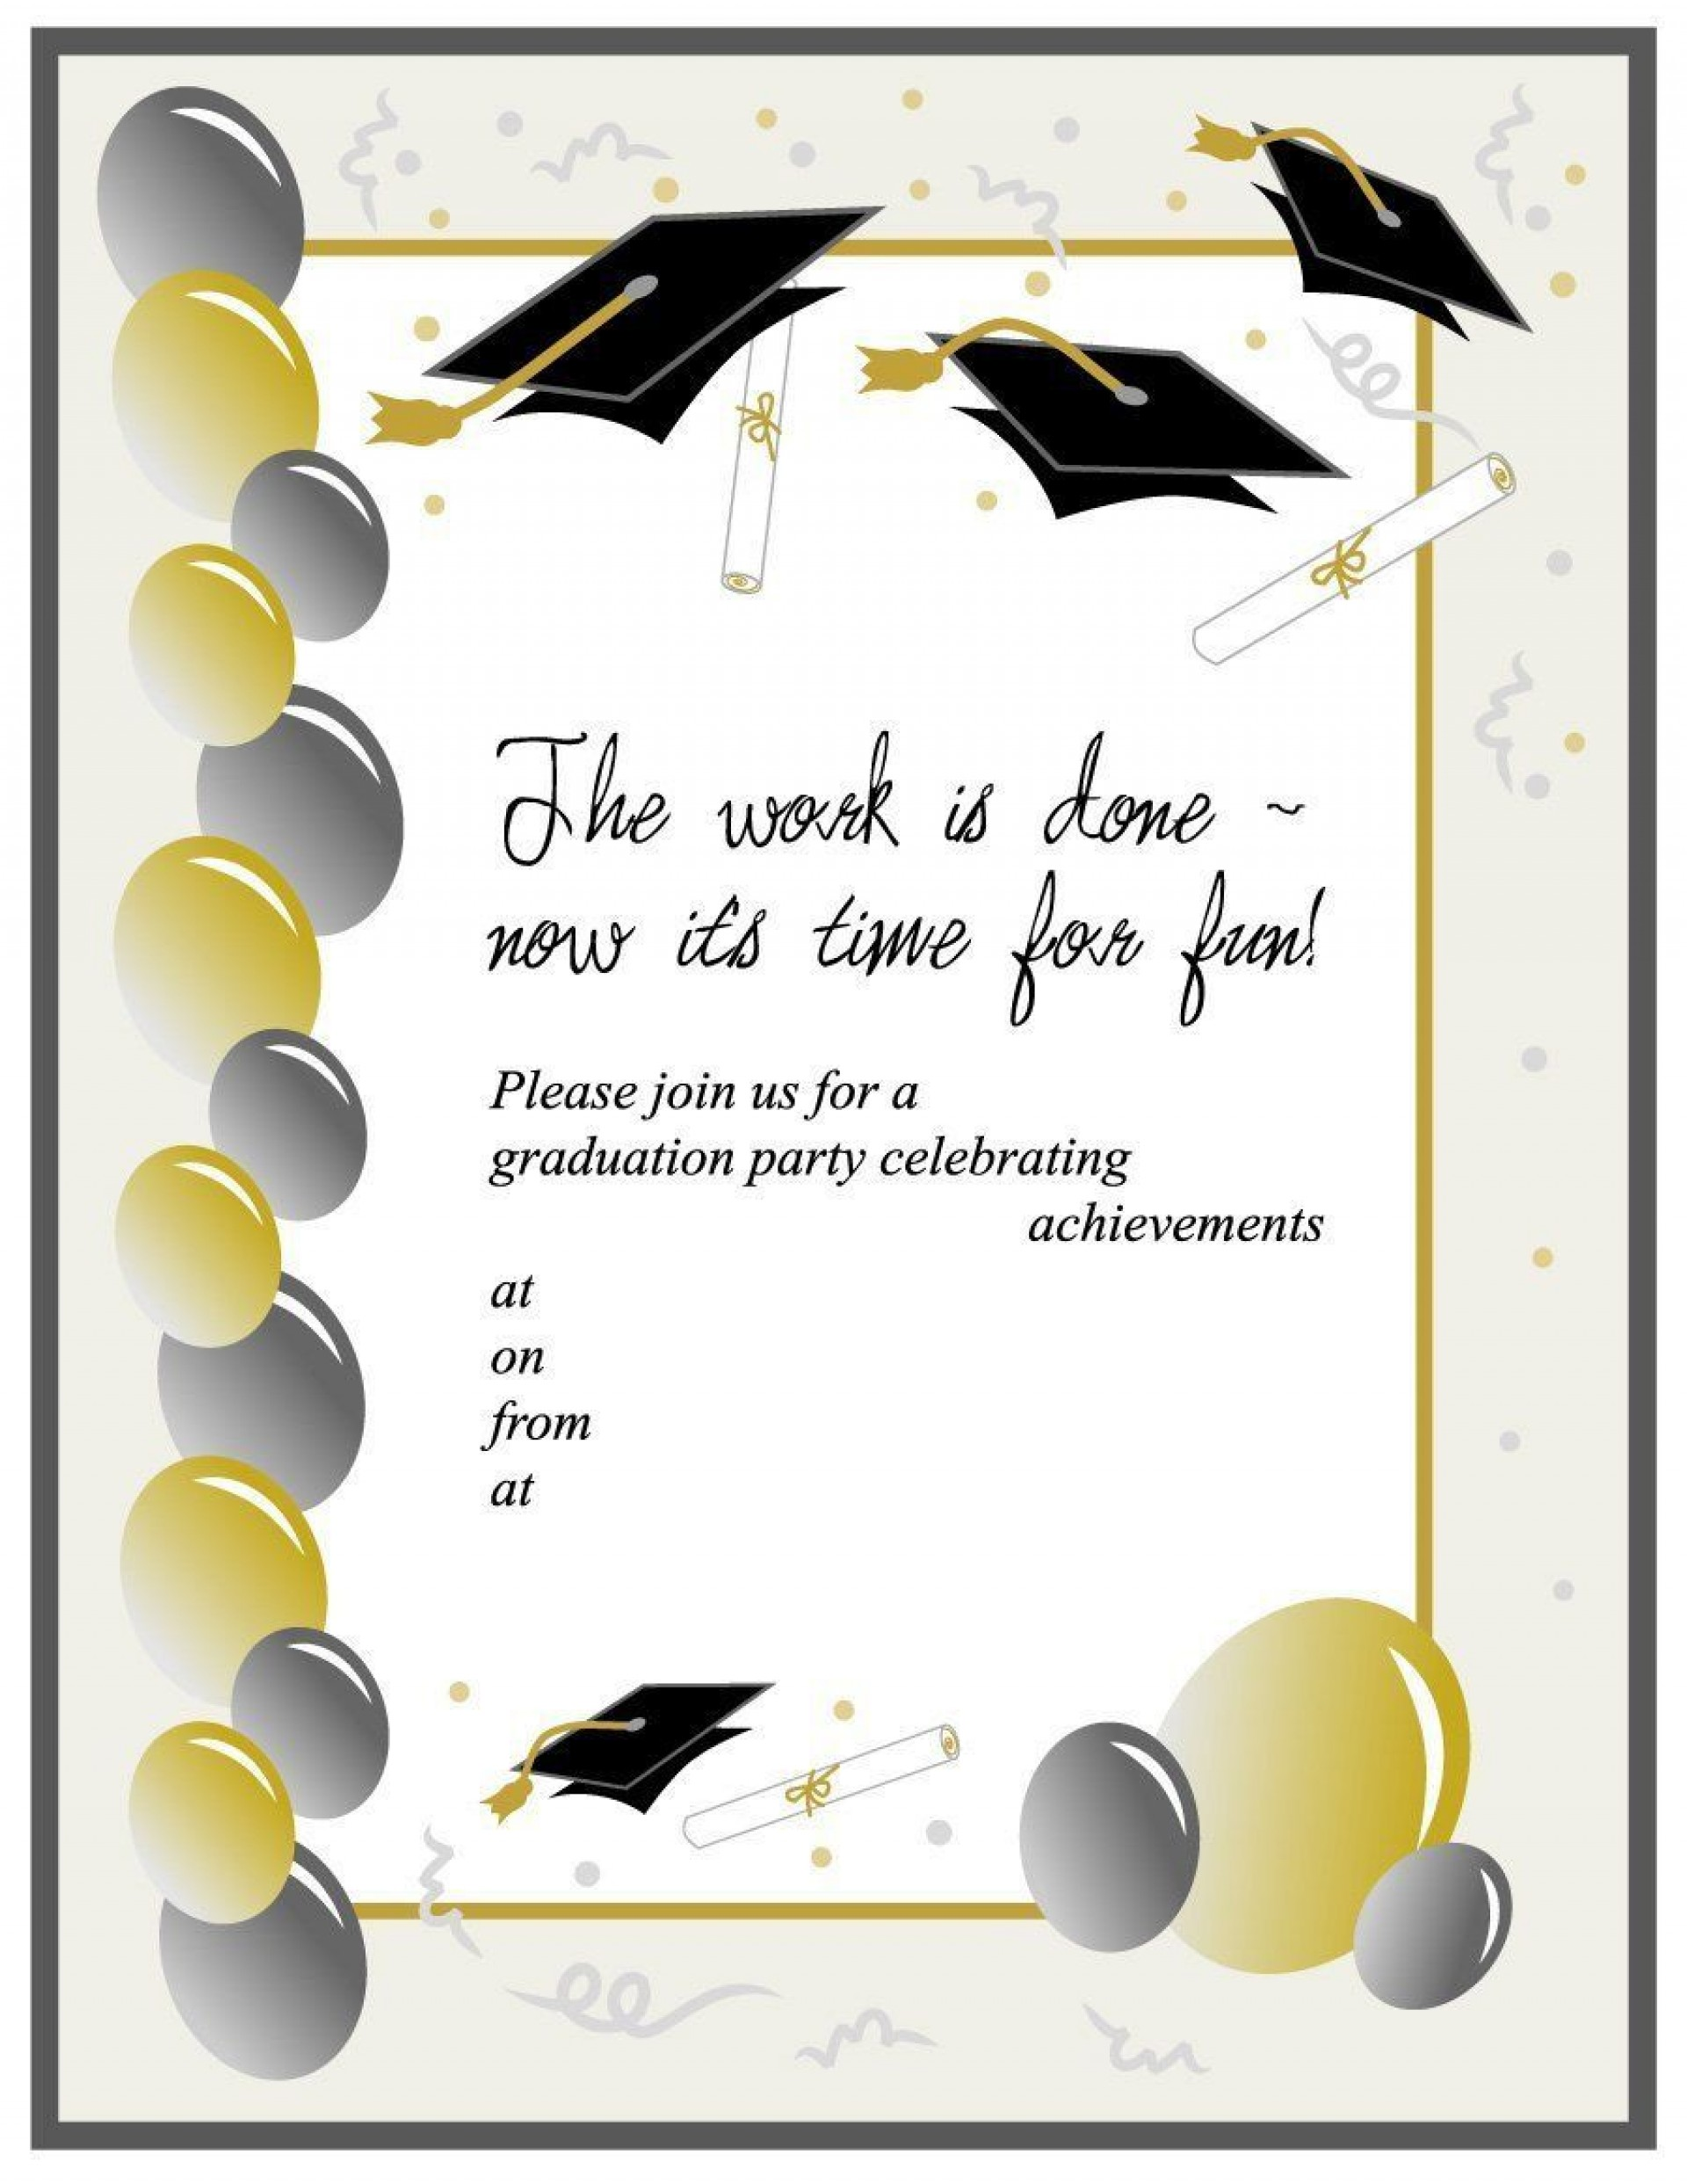 008 Unbelievable Free Graduation Invitation Template Printable Image  Party For Word Preschool1920